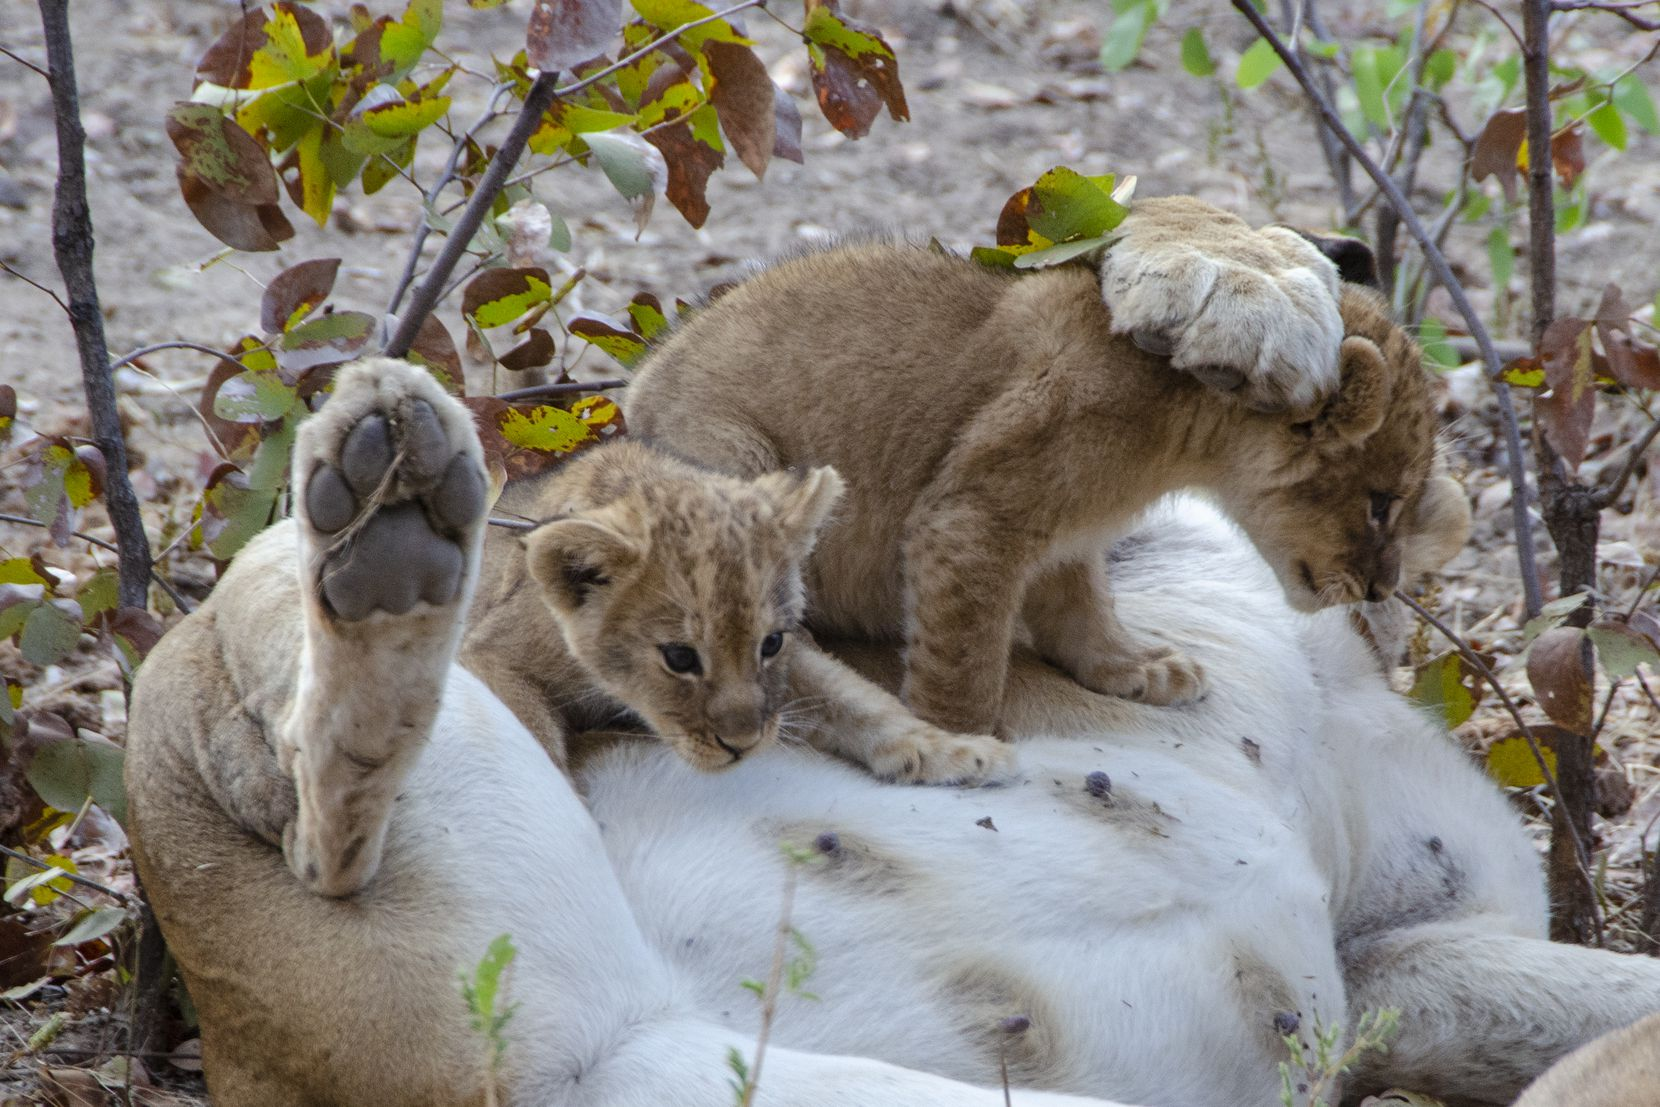 Two lion cubs play with their overfed mother in Zambia's South Luangwa National Park.